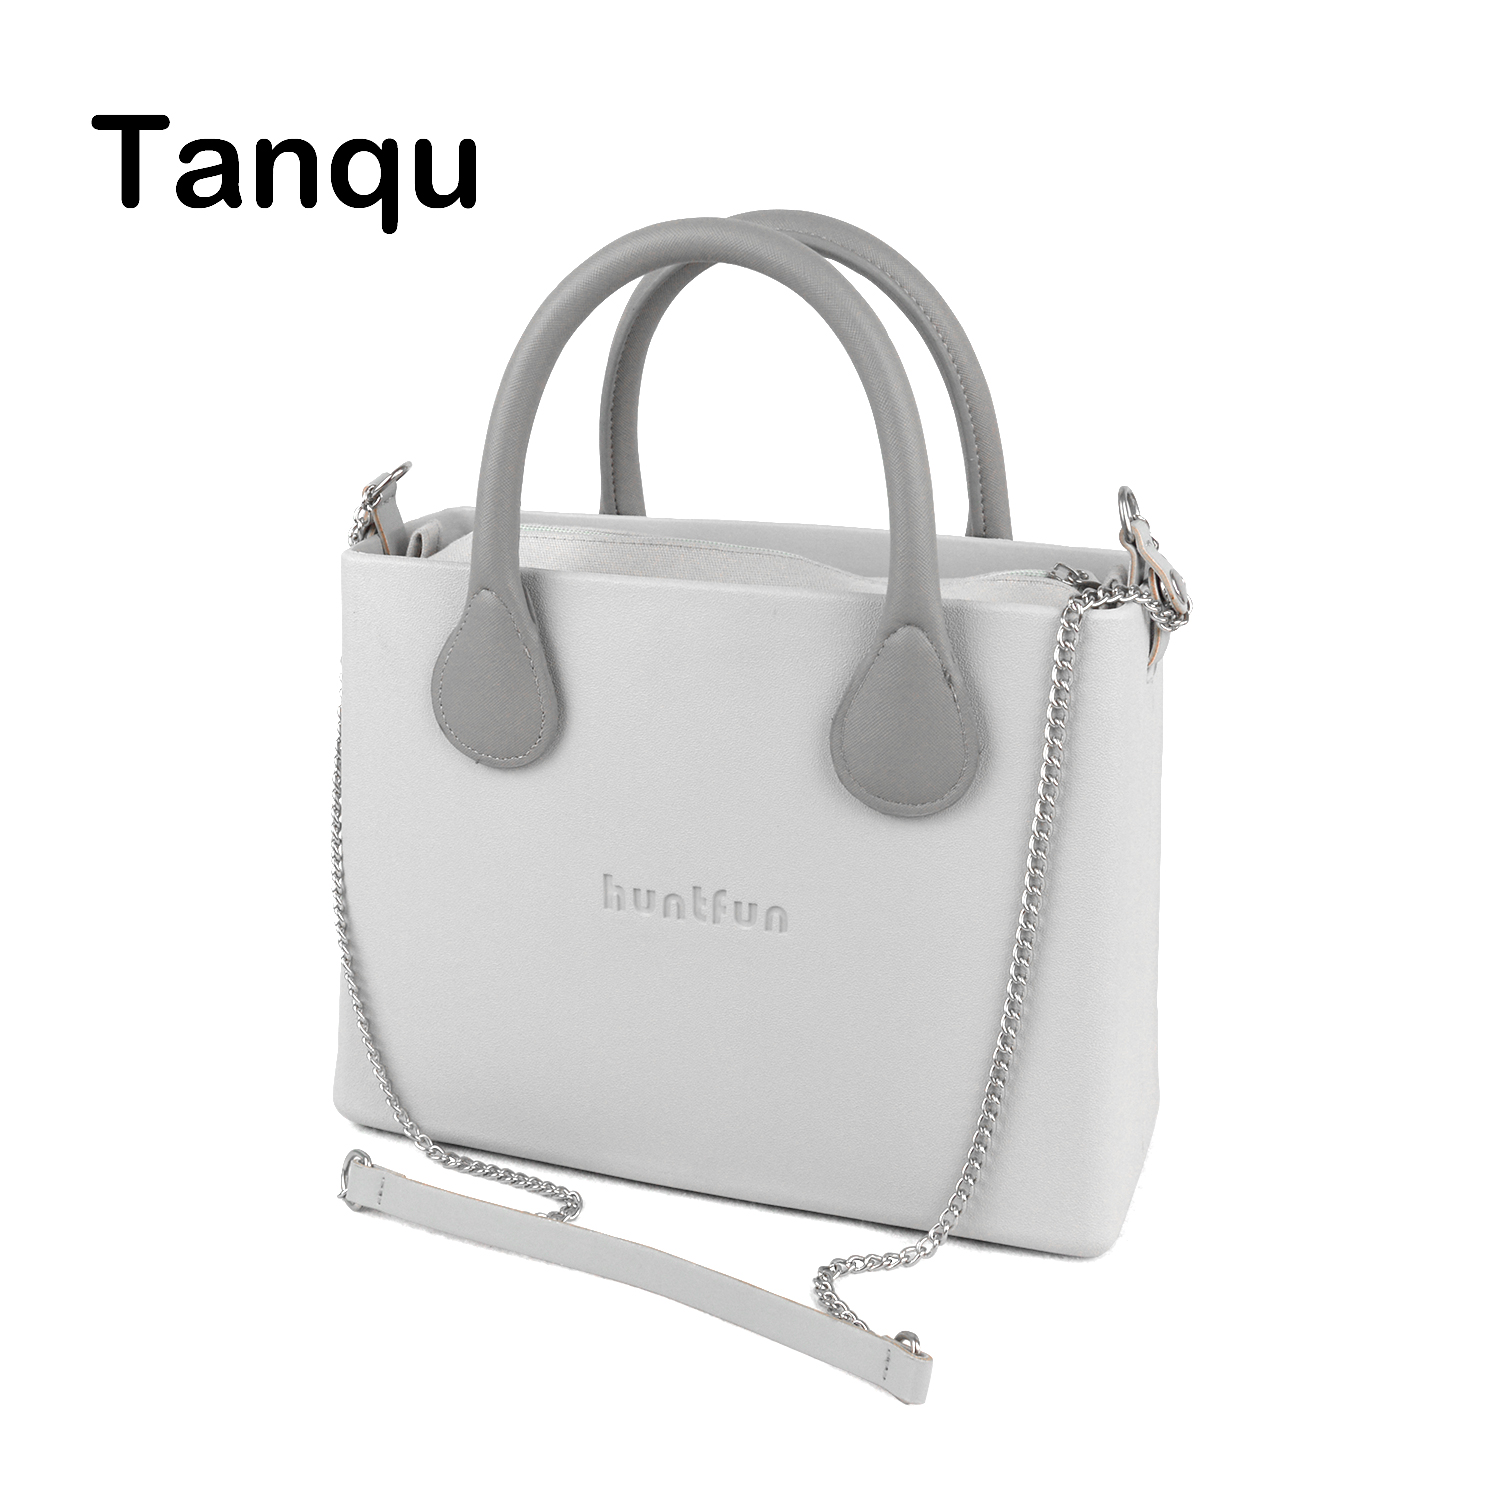 New O Bag Style huntfun Silicon Square EVA Bag with Leather Handle Cross body Shoulder Chain Waterproof Insert Women handbag china s yunnan national style pu leather women s handbag geometric pattern casual cross style square shoulder bag